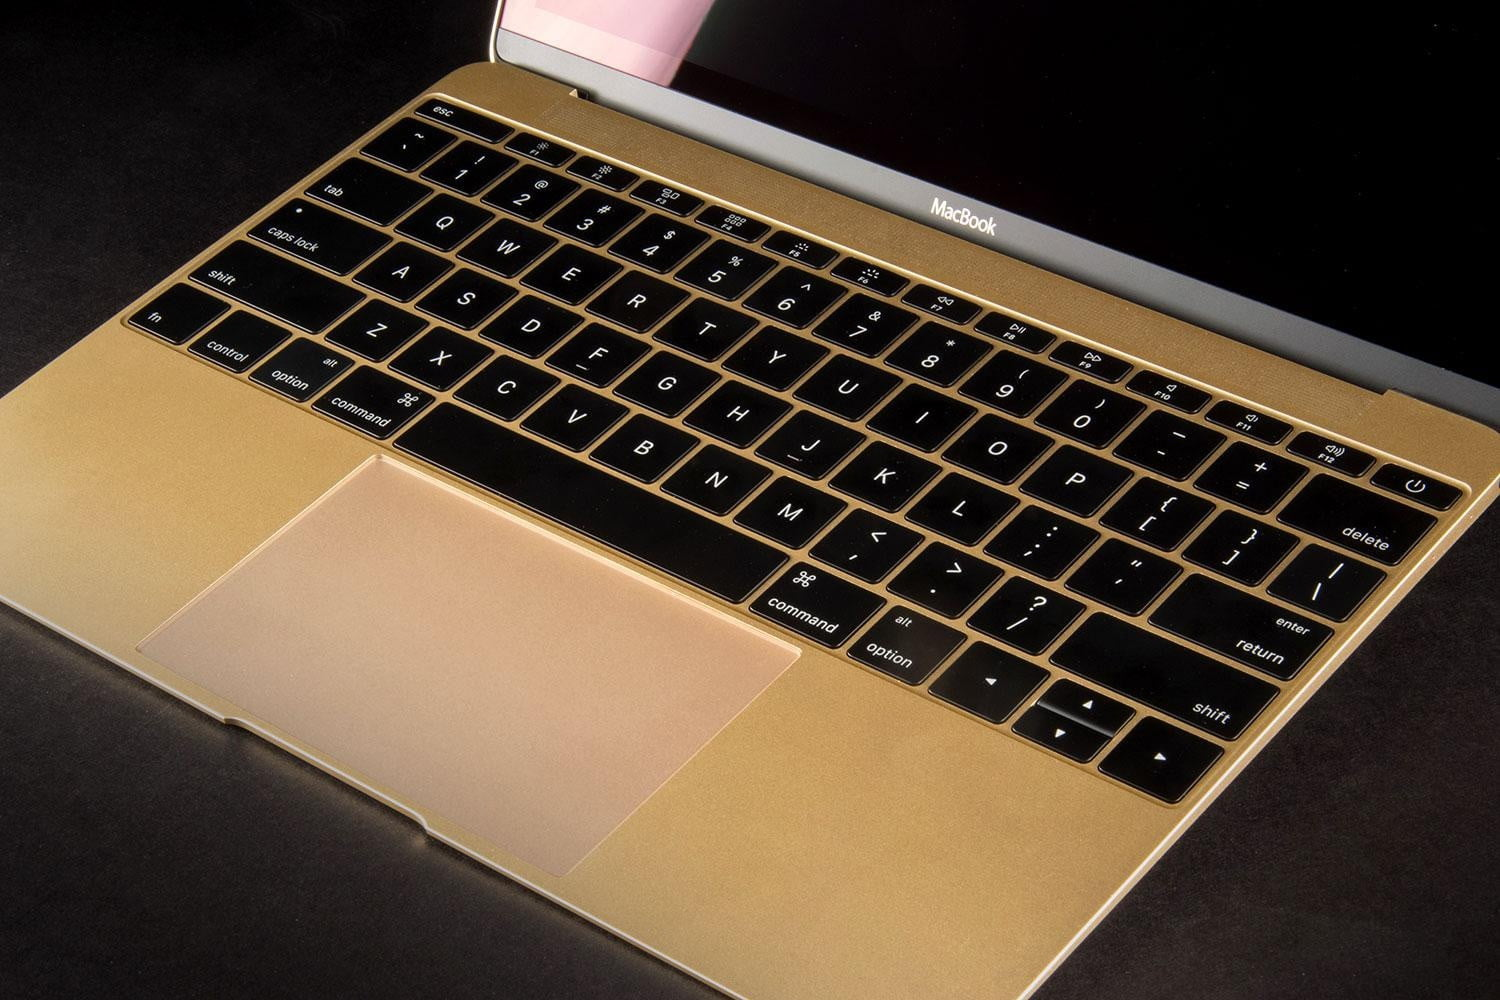 2015 Apple Macbook Review The New Gold Macbook Digital